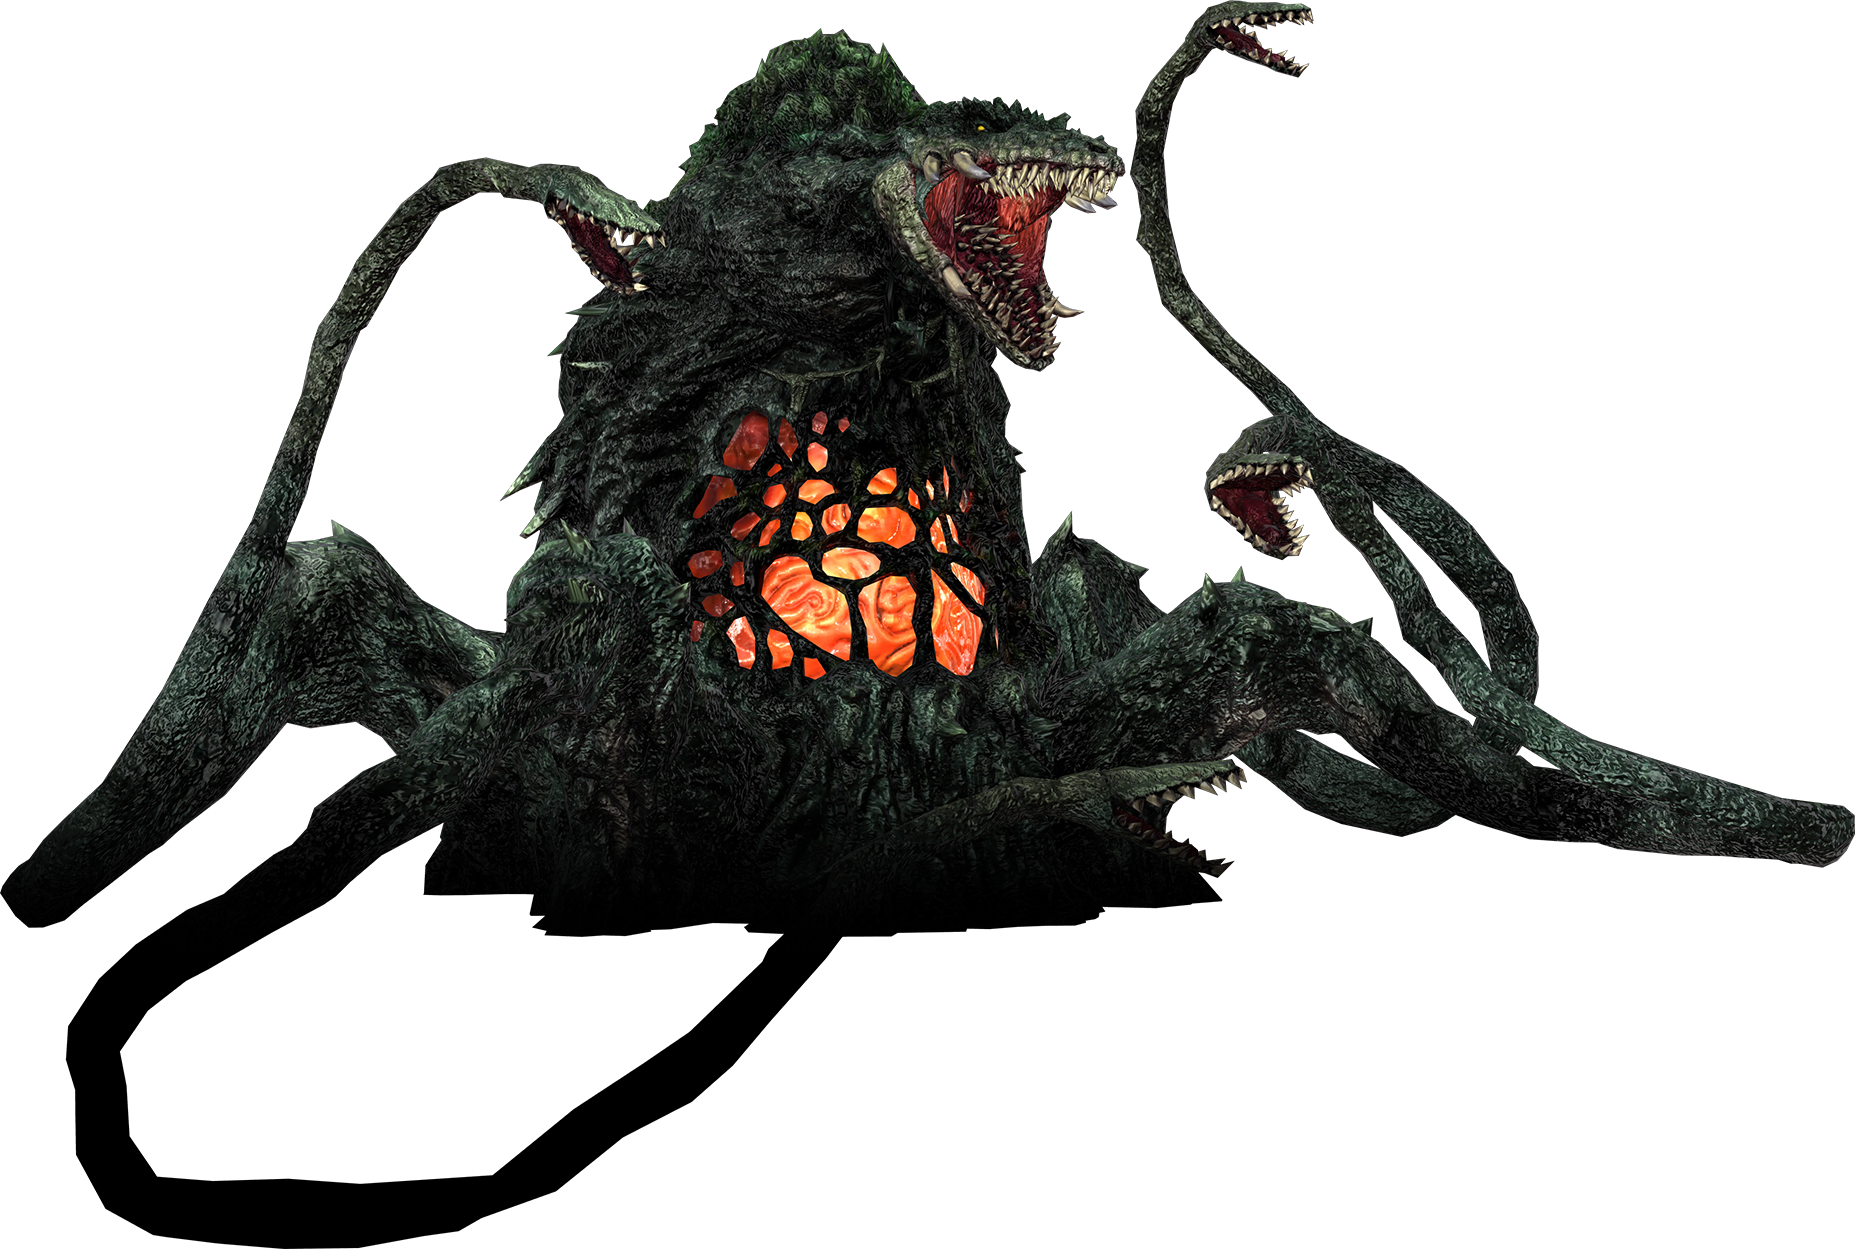 http://orig02.deviantart.net/9aa7/f/2014/276/a/8/godzilla_the_video_game__biollante_by_sonichedgehog2-d81dipe.png Mecha